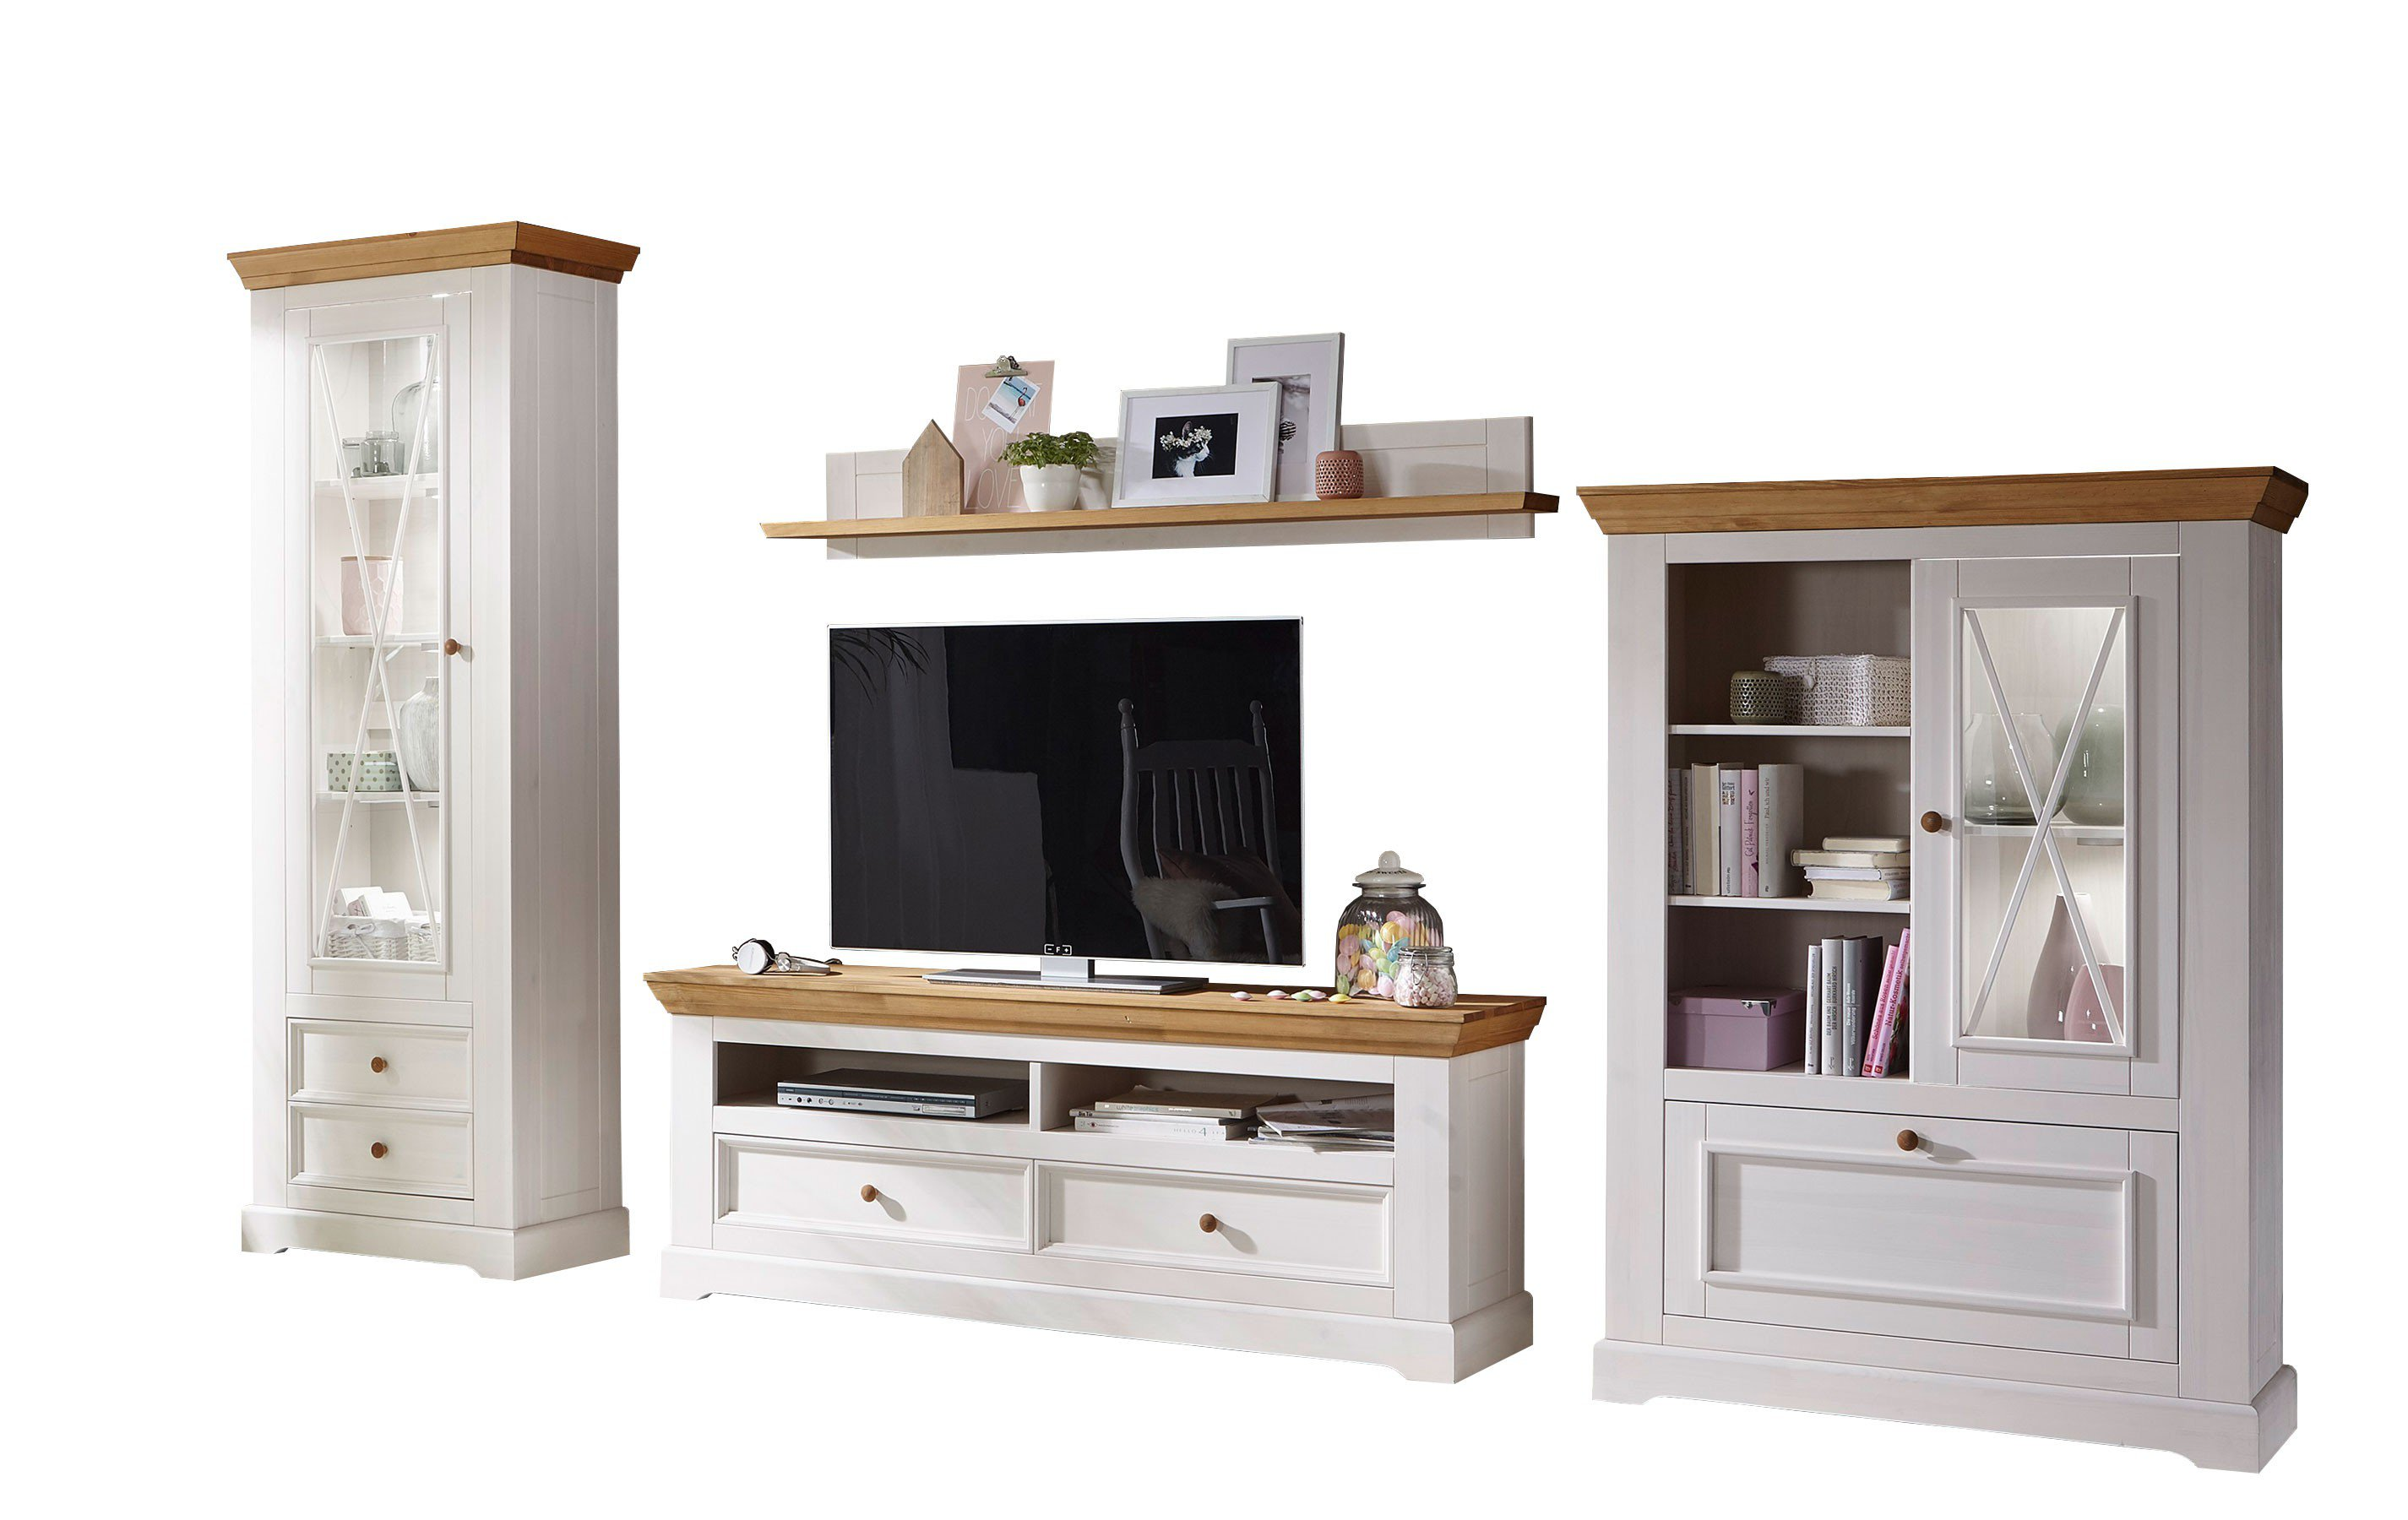 gk m belvertrieb wz 0133 wohnwand w2 kiefer glas m bel letz ihr online shop. Black Bedroom Furniture Sets. Home Design Ideas